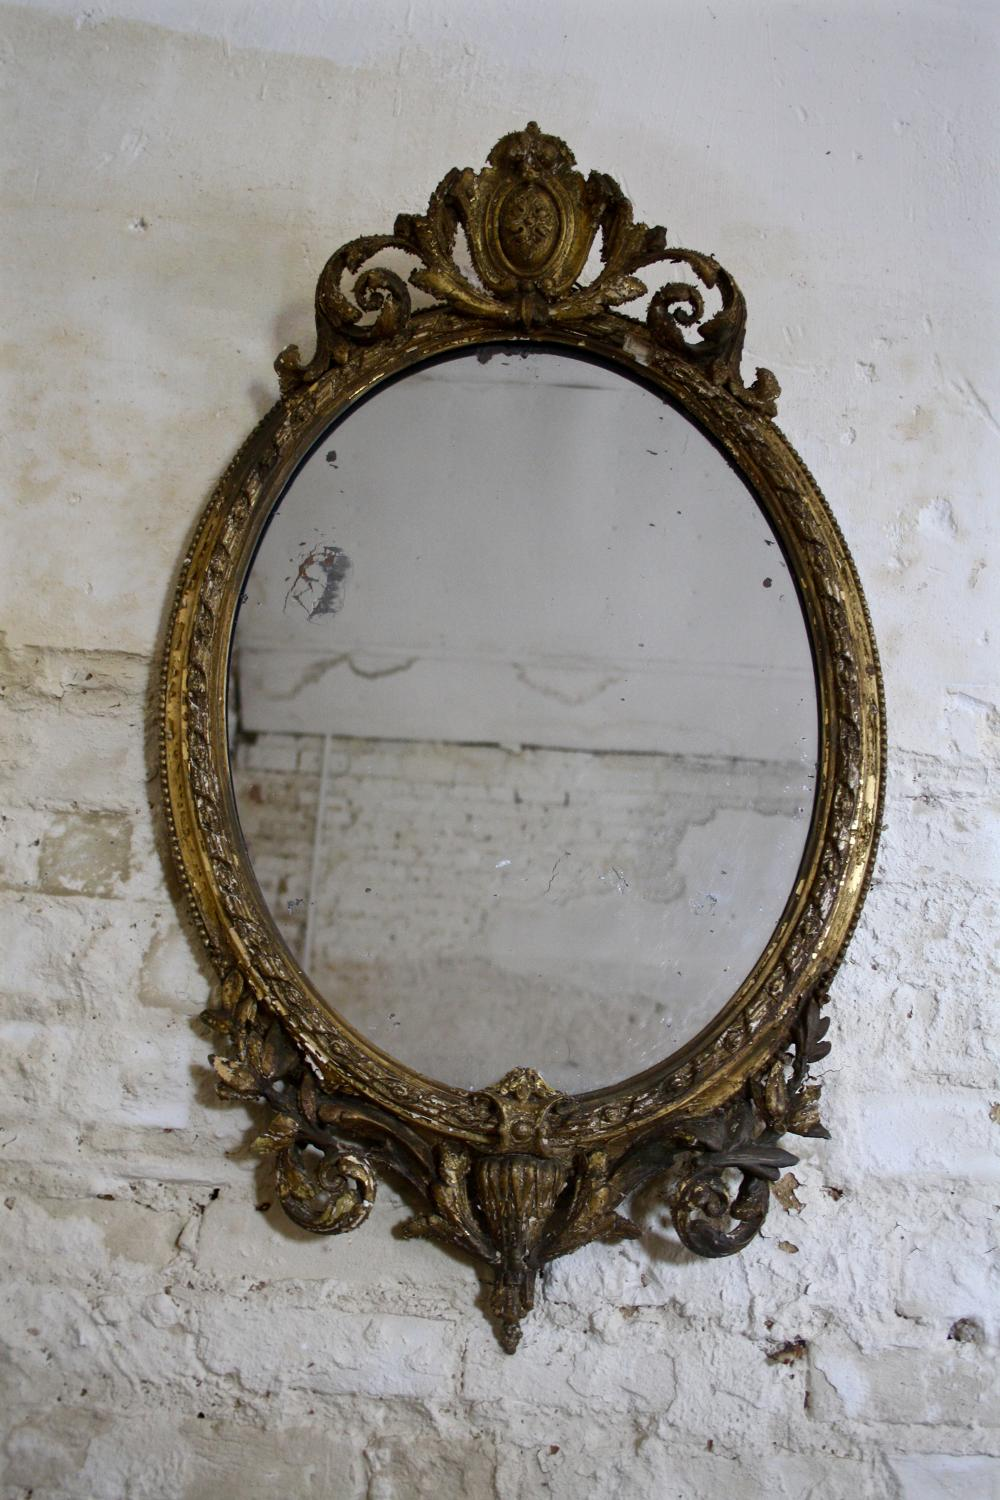 19th century oval gilt mirror